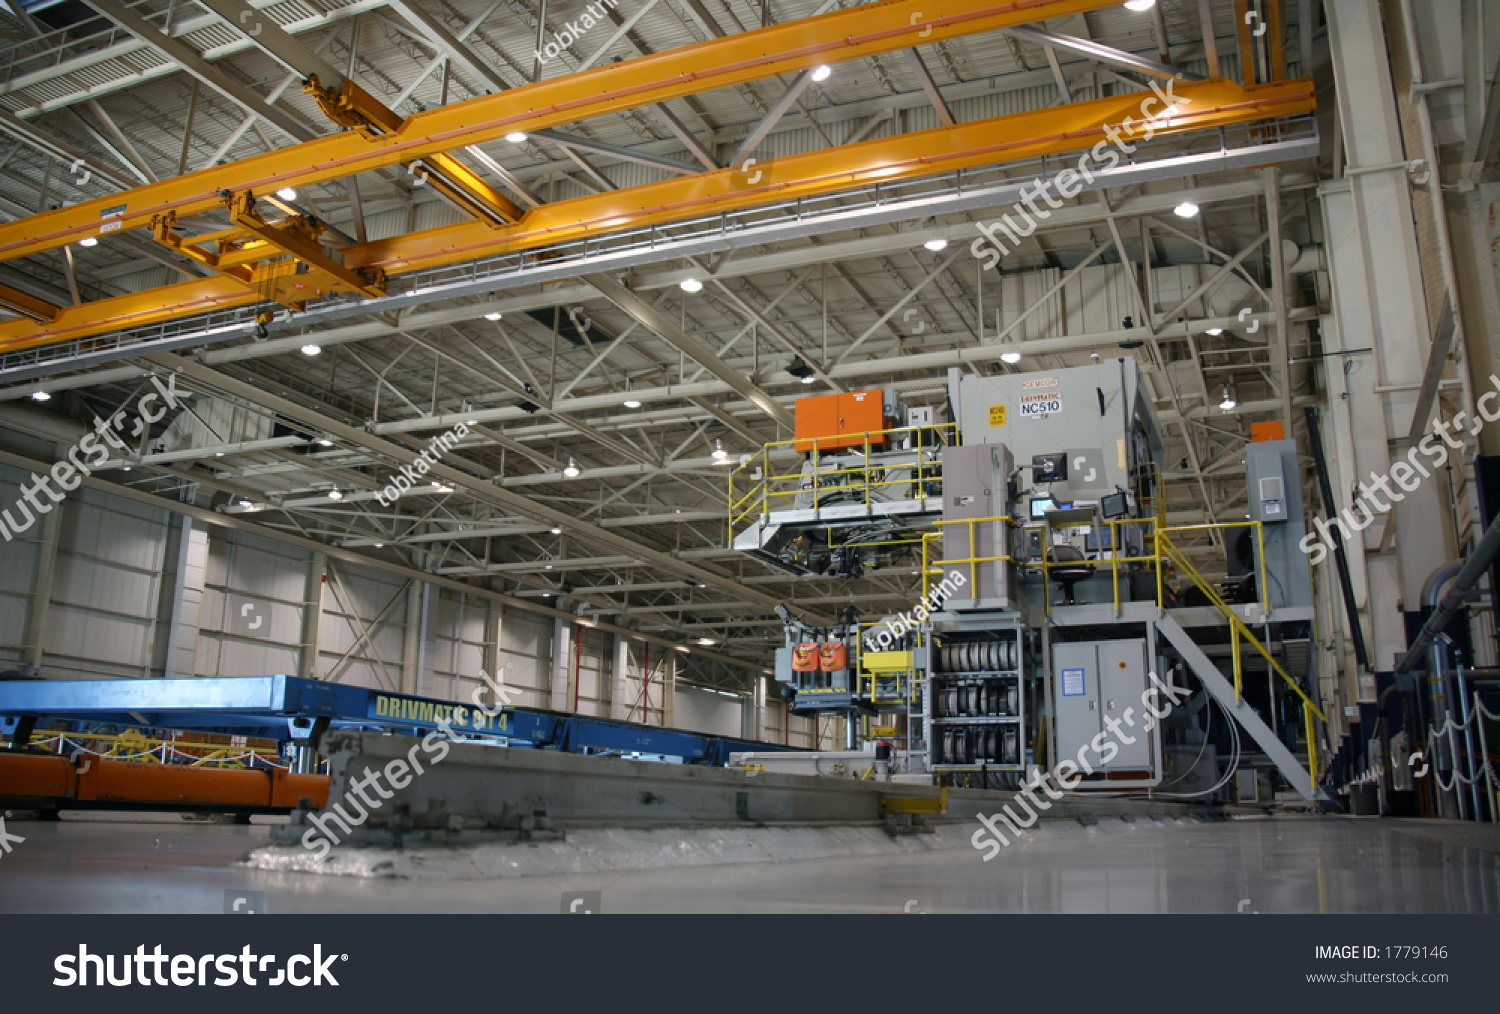 inside aerospace production facility - photo #3